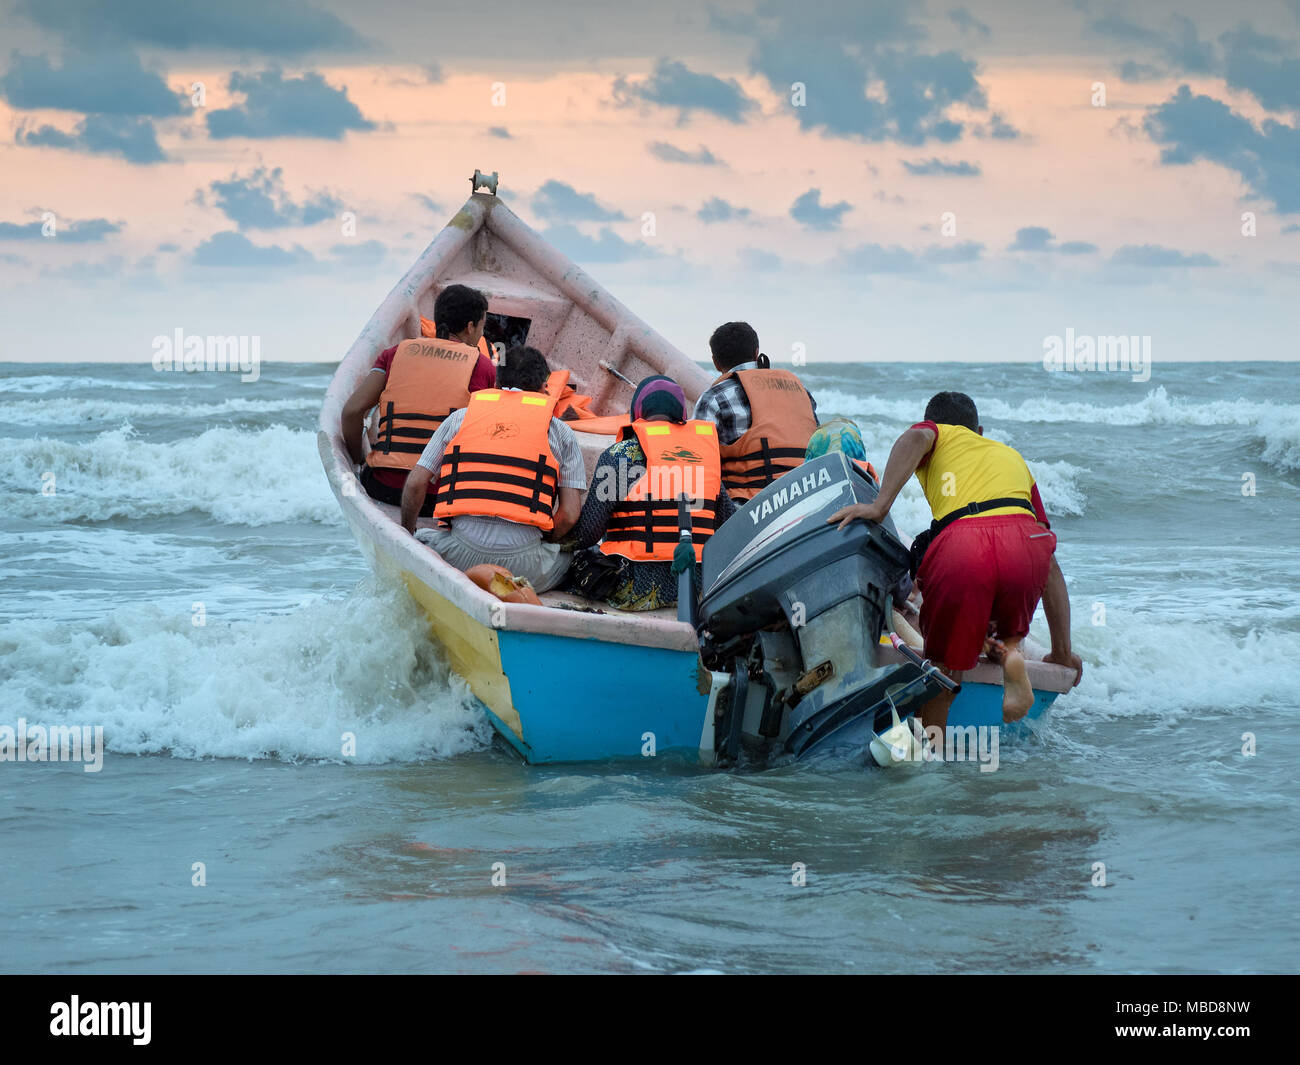 Babolsar, Iran - July 24, 2016 : Iranian tourists going for ride on a motorboat on the Caspian sea - Stock Image